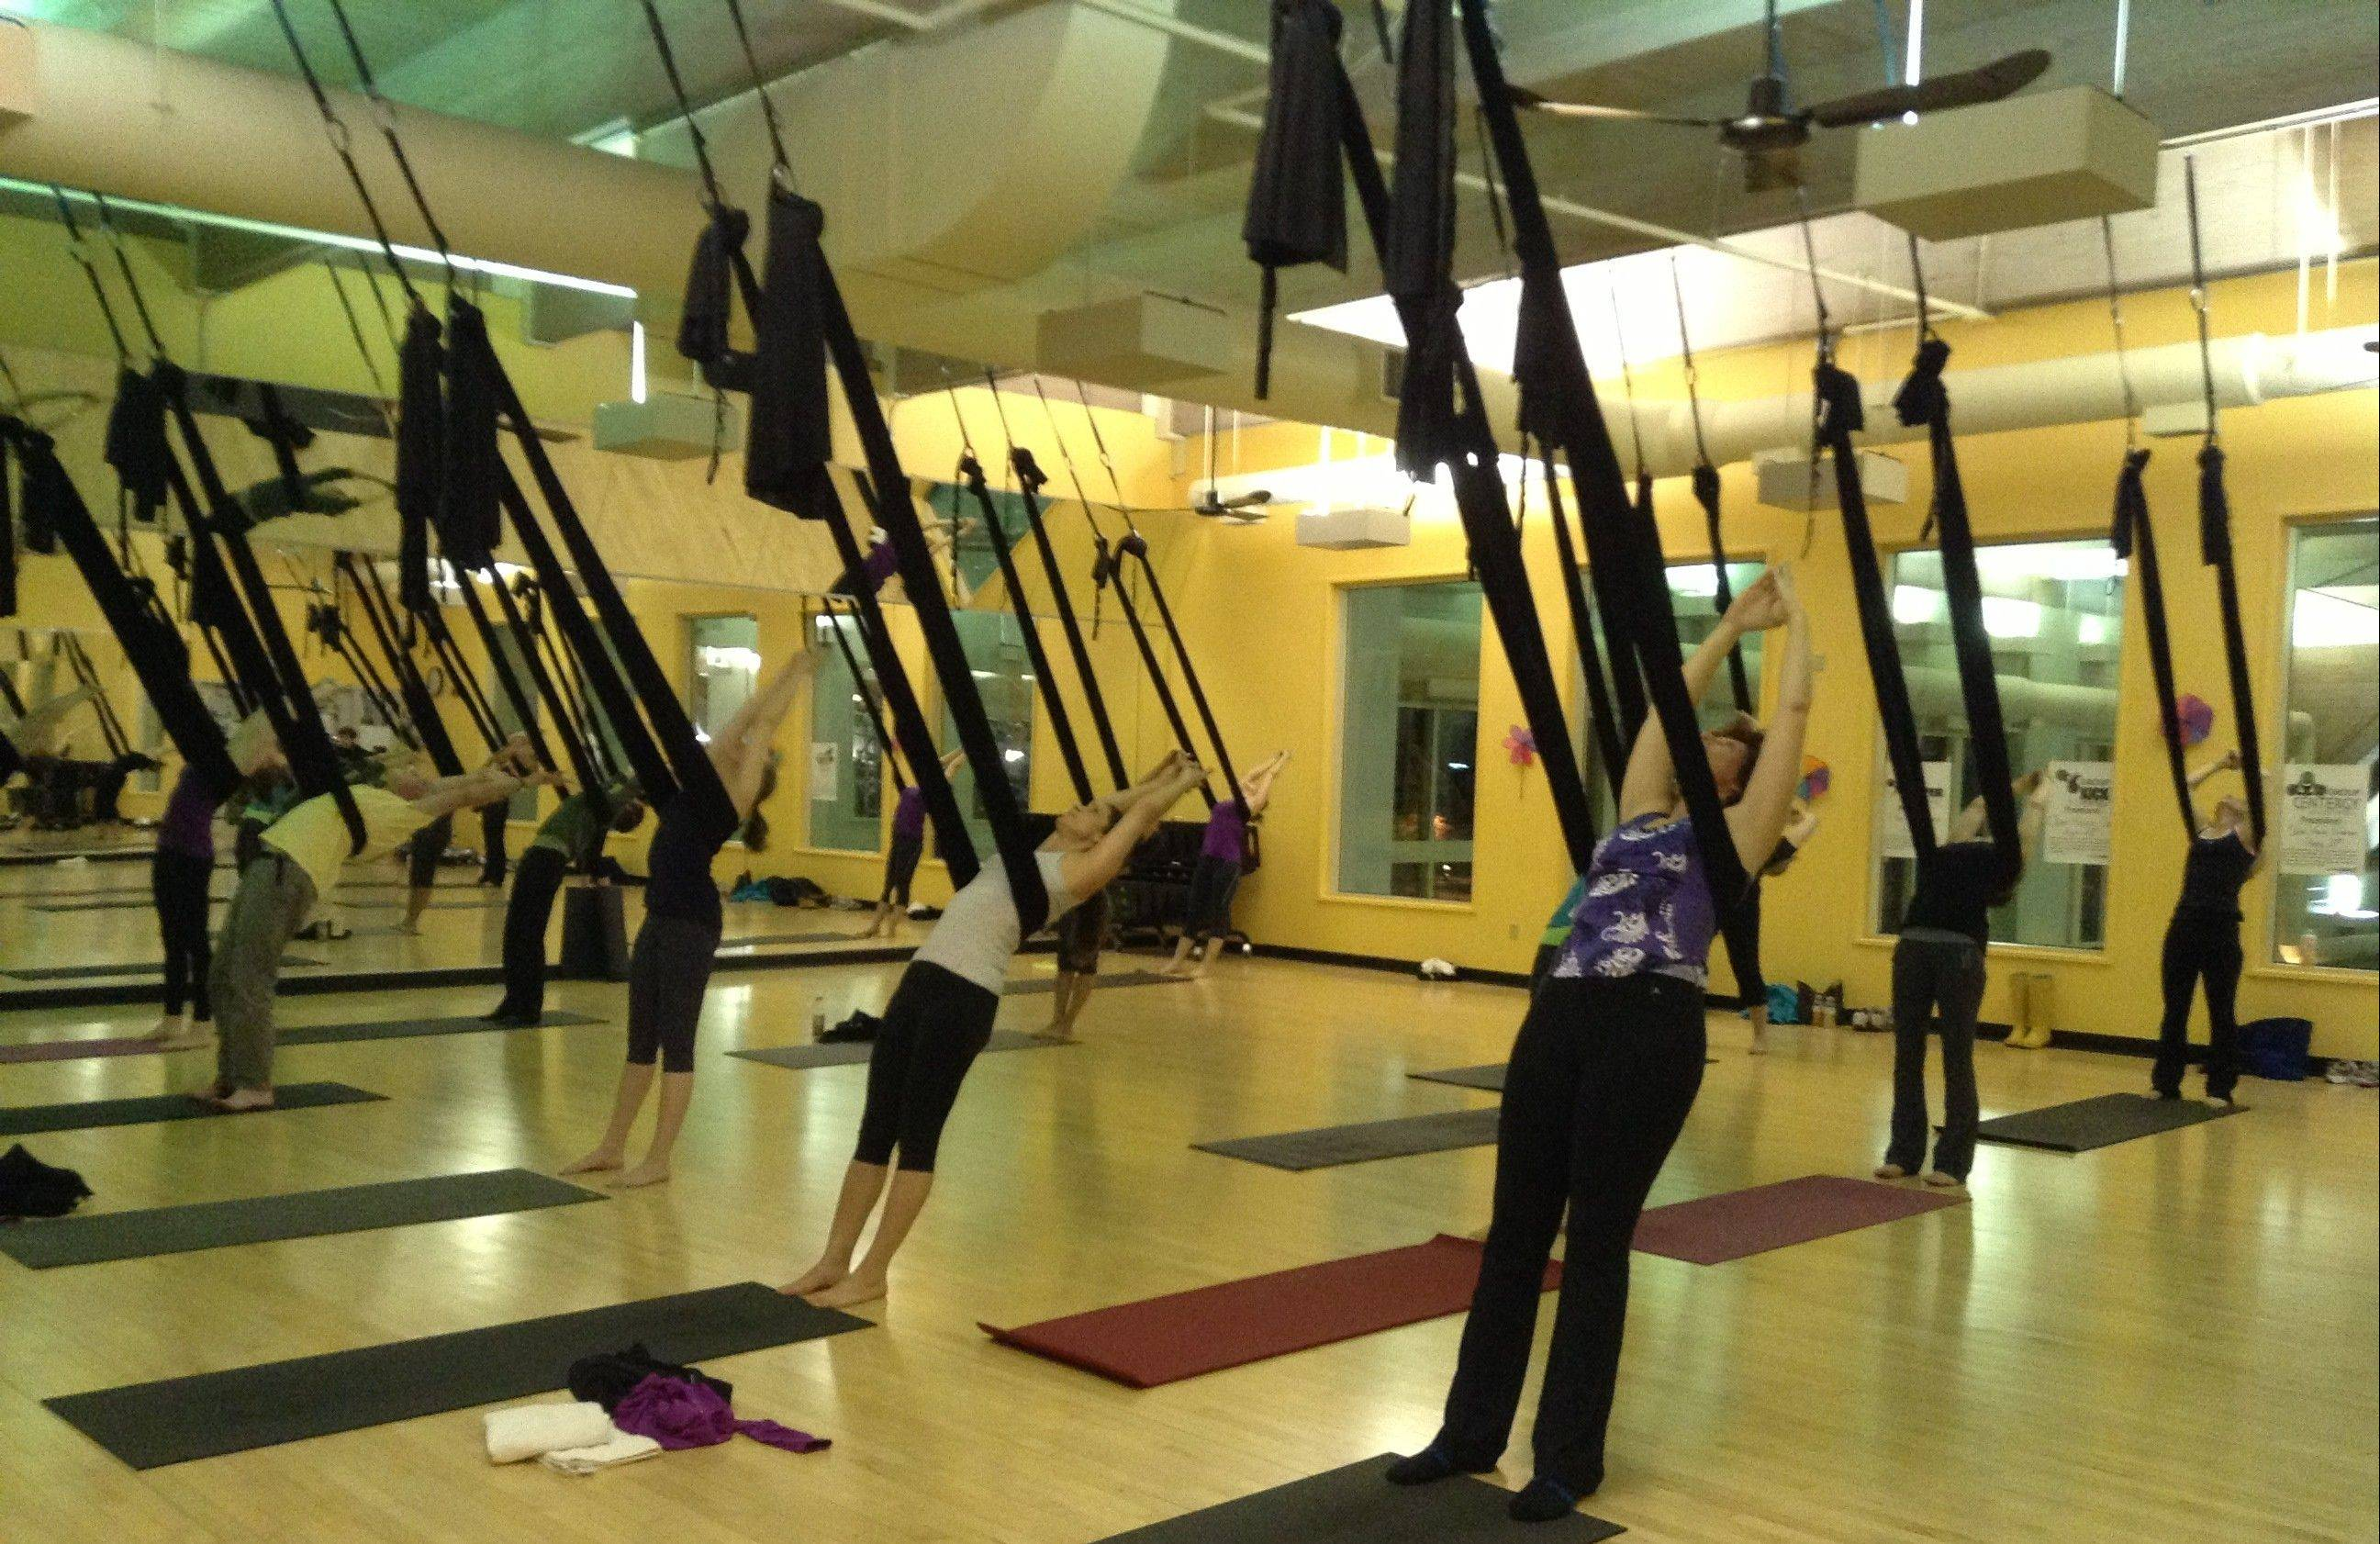 Students at Sky Fitness in Buffalo Grove lean back onto the black silks during an aerial yoga class. The silks provide different support and traction than a regular yoga class on a mat.